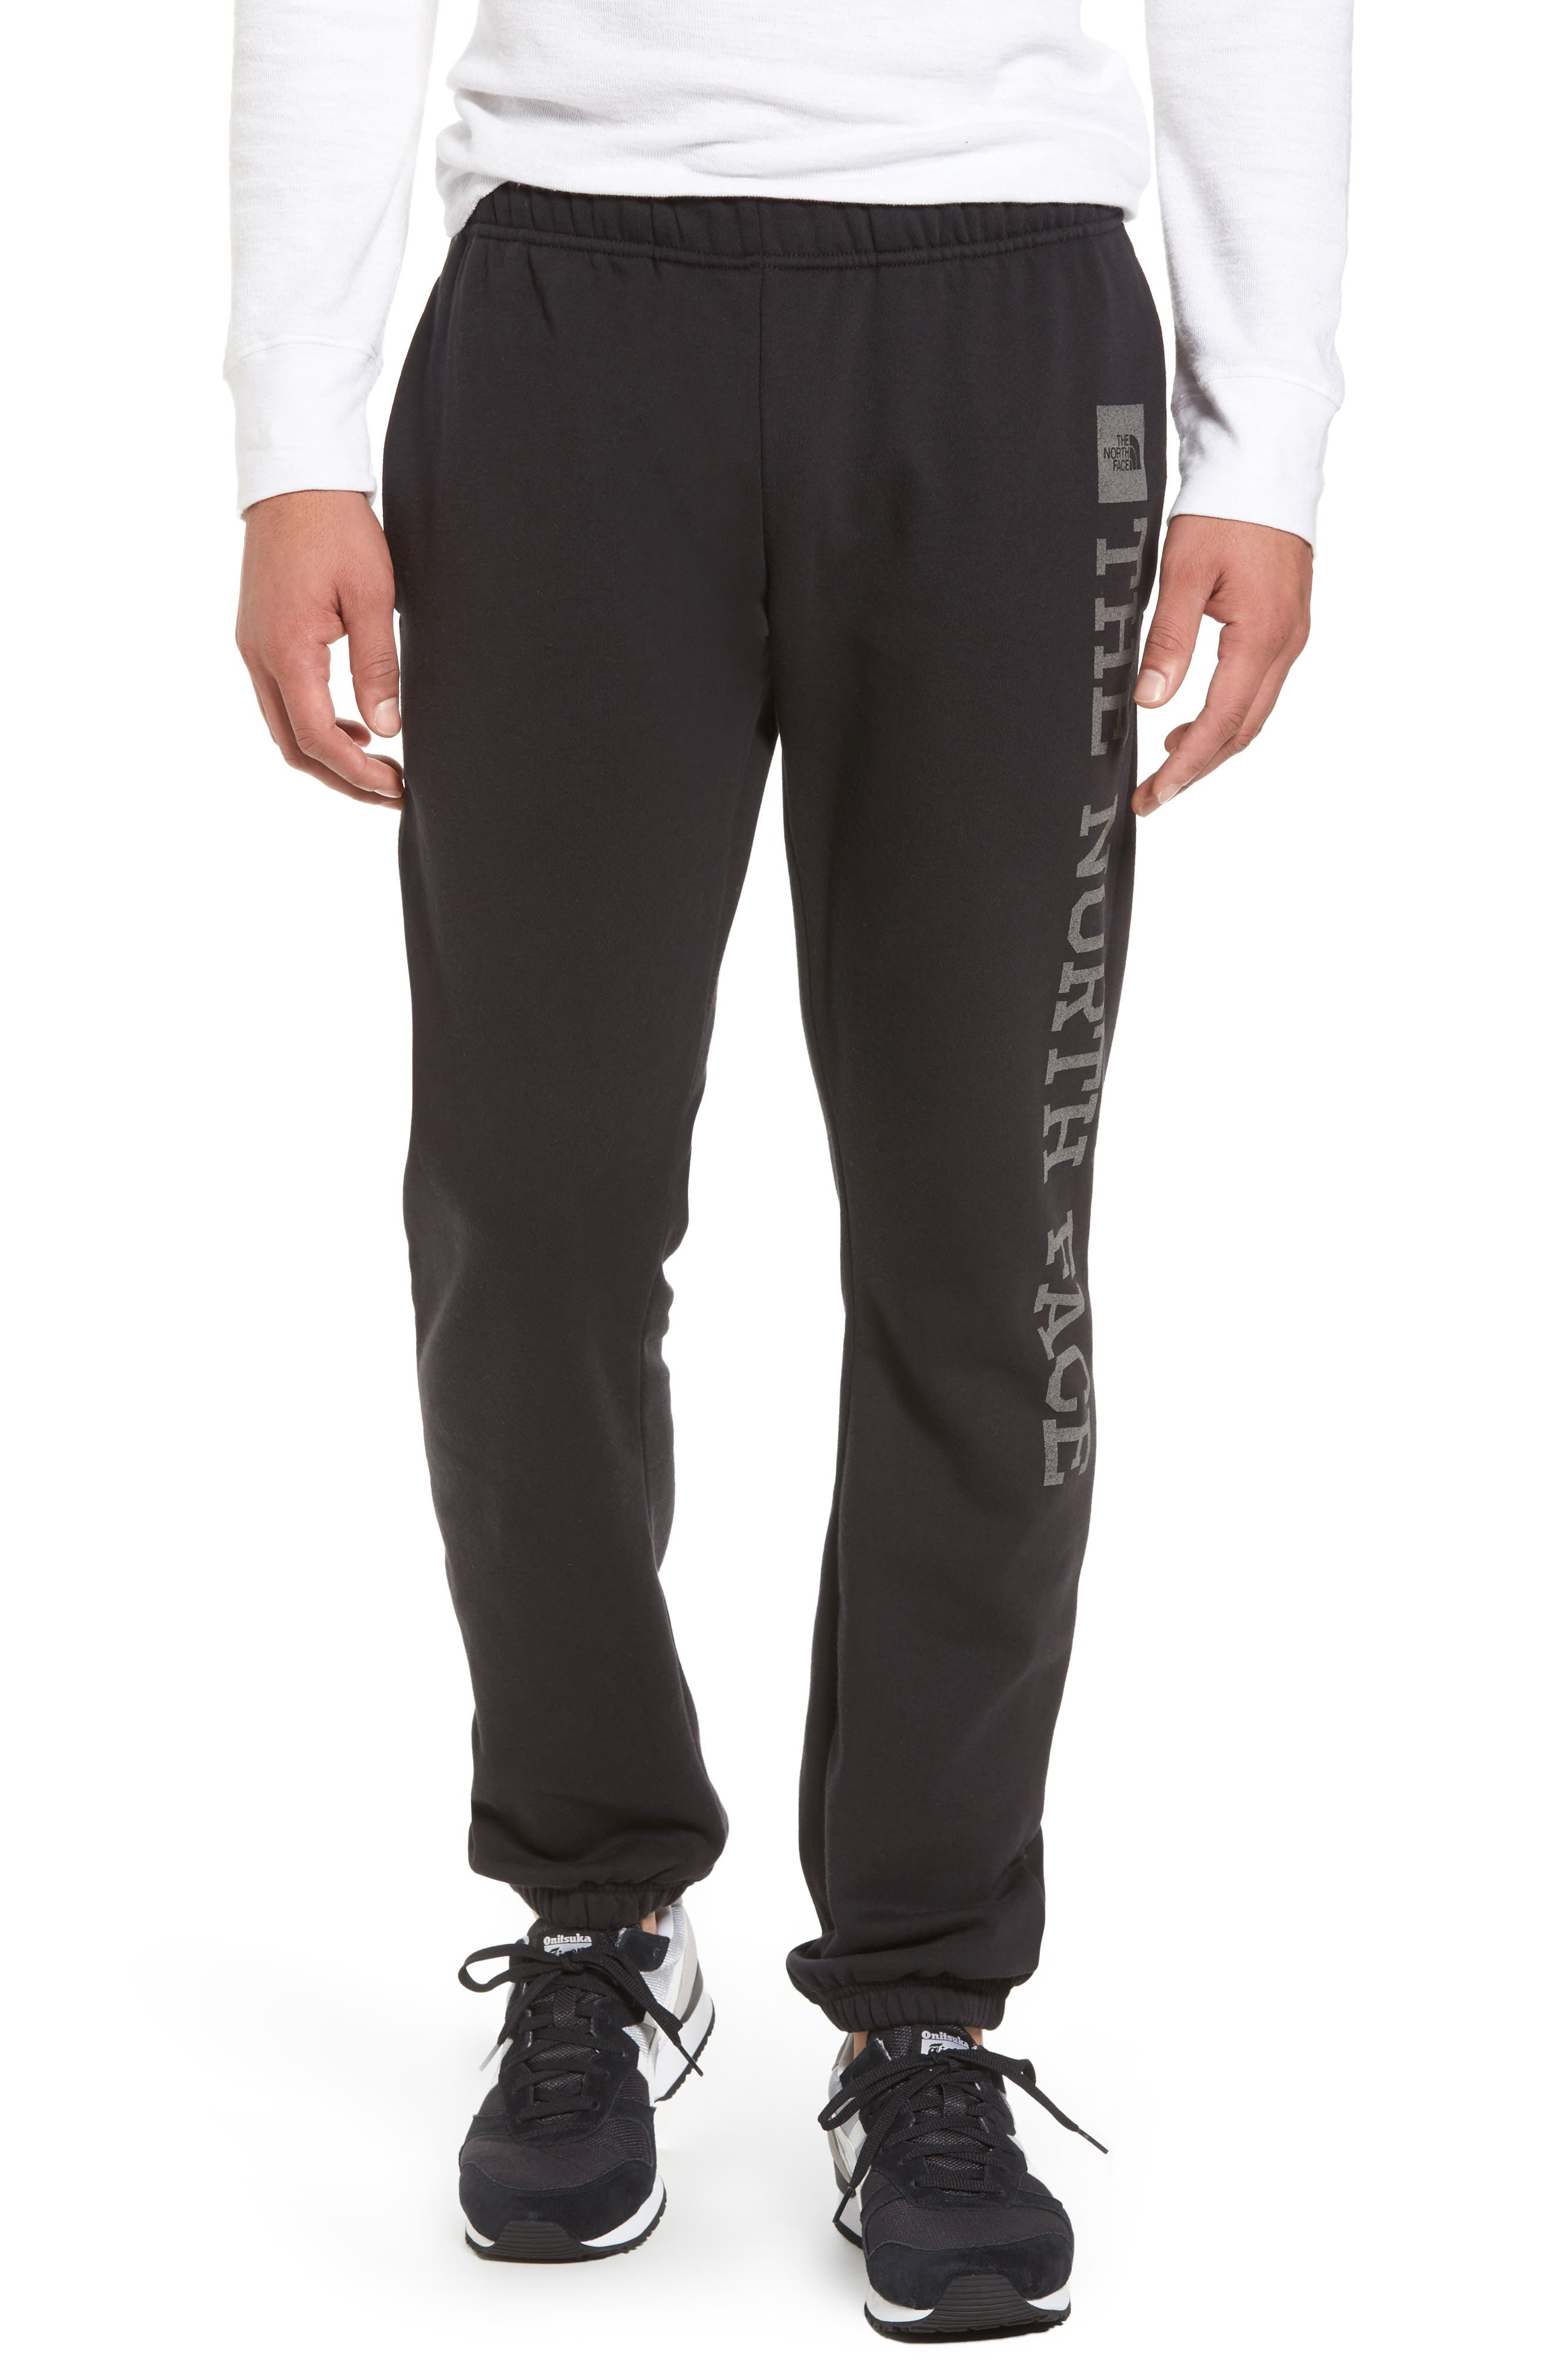 Reflective Never Stop Pants,                         Main,                         color,